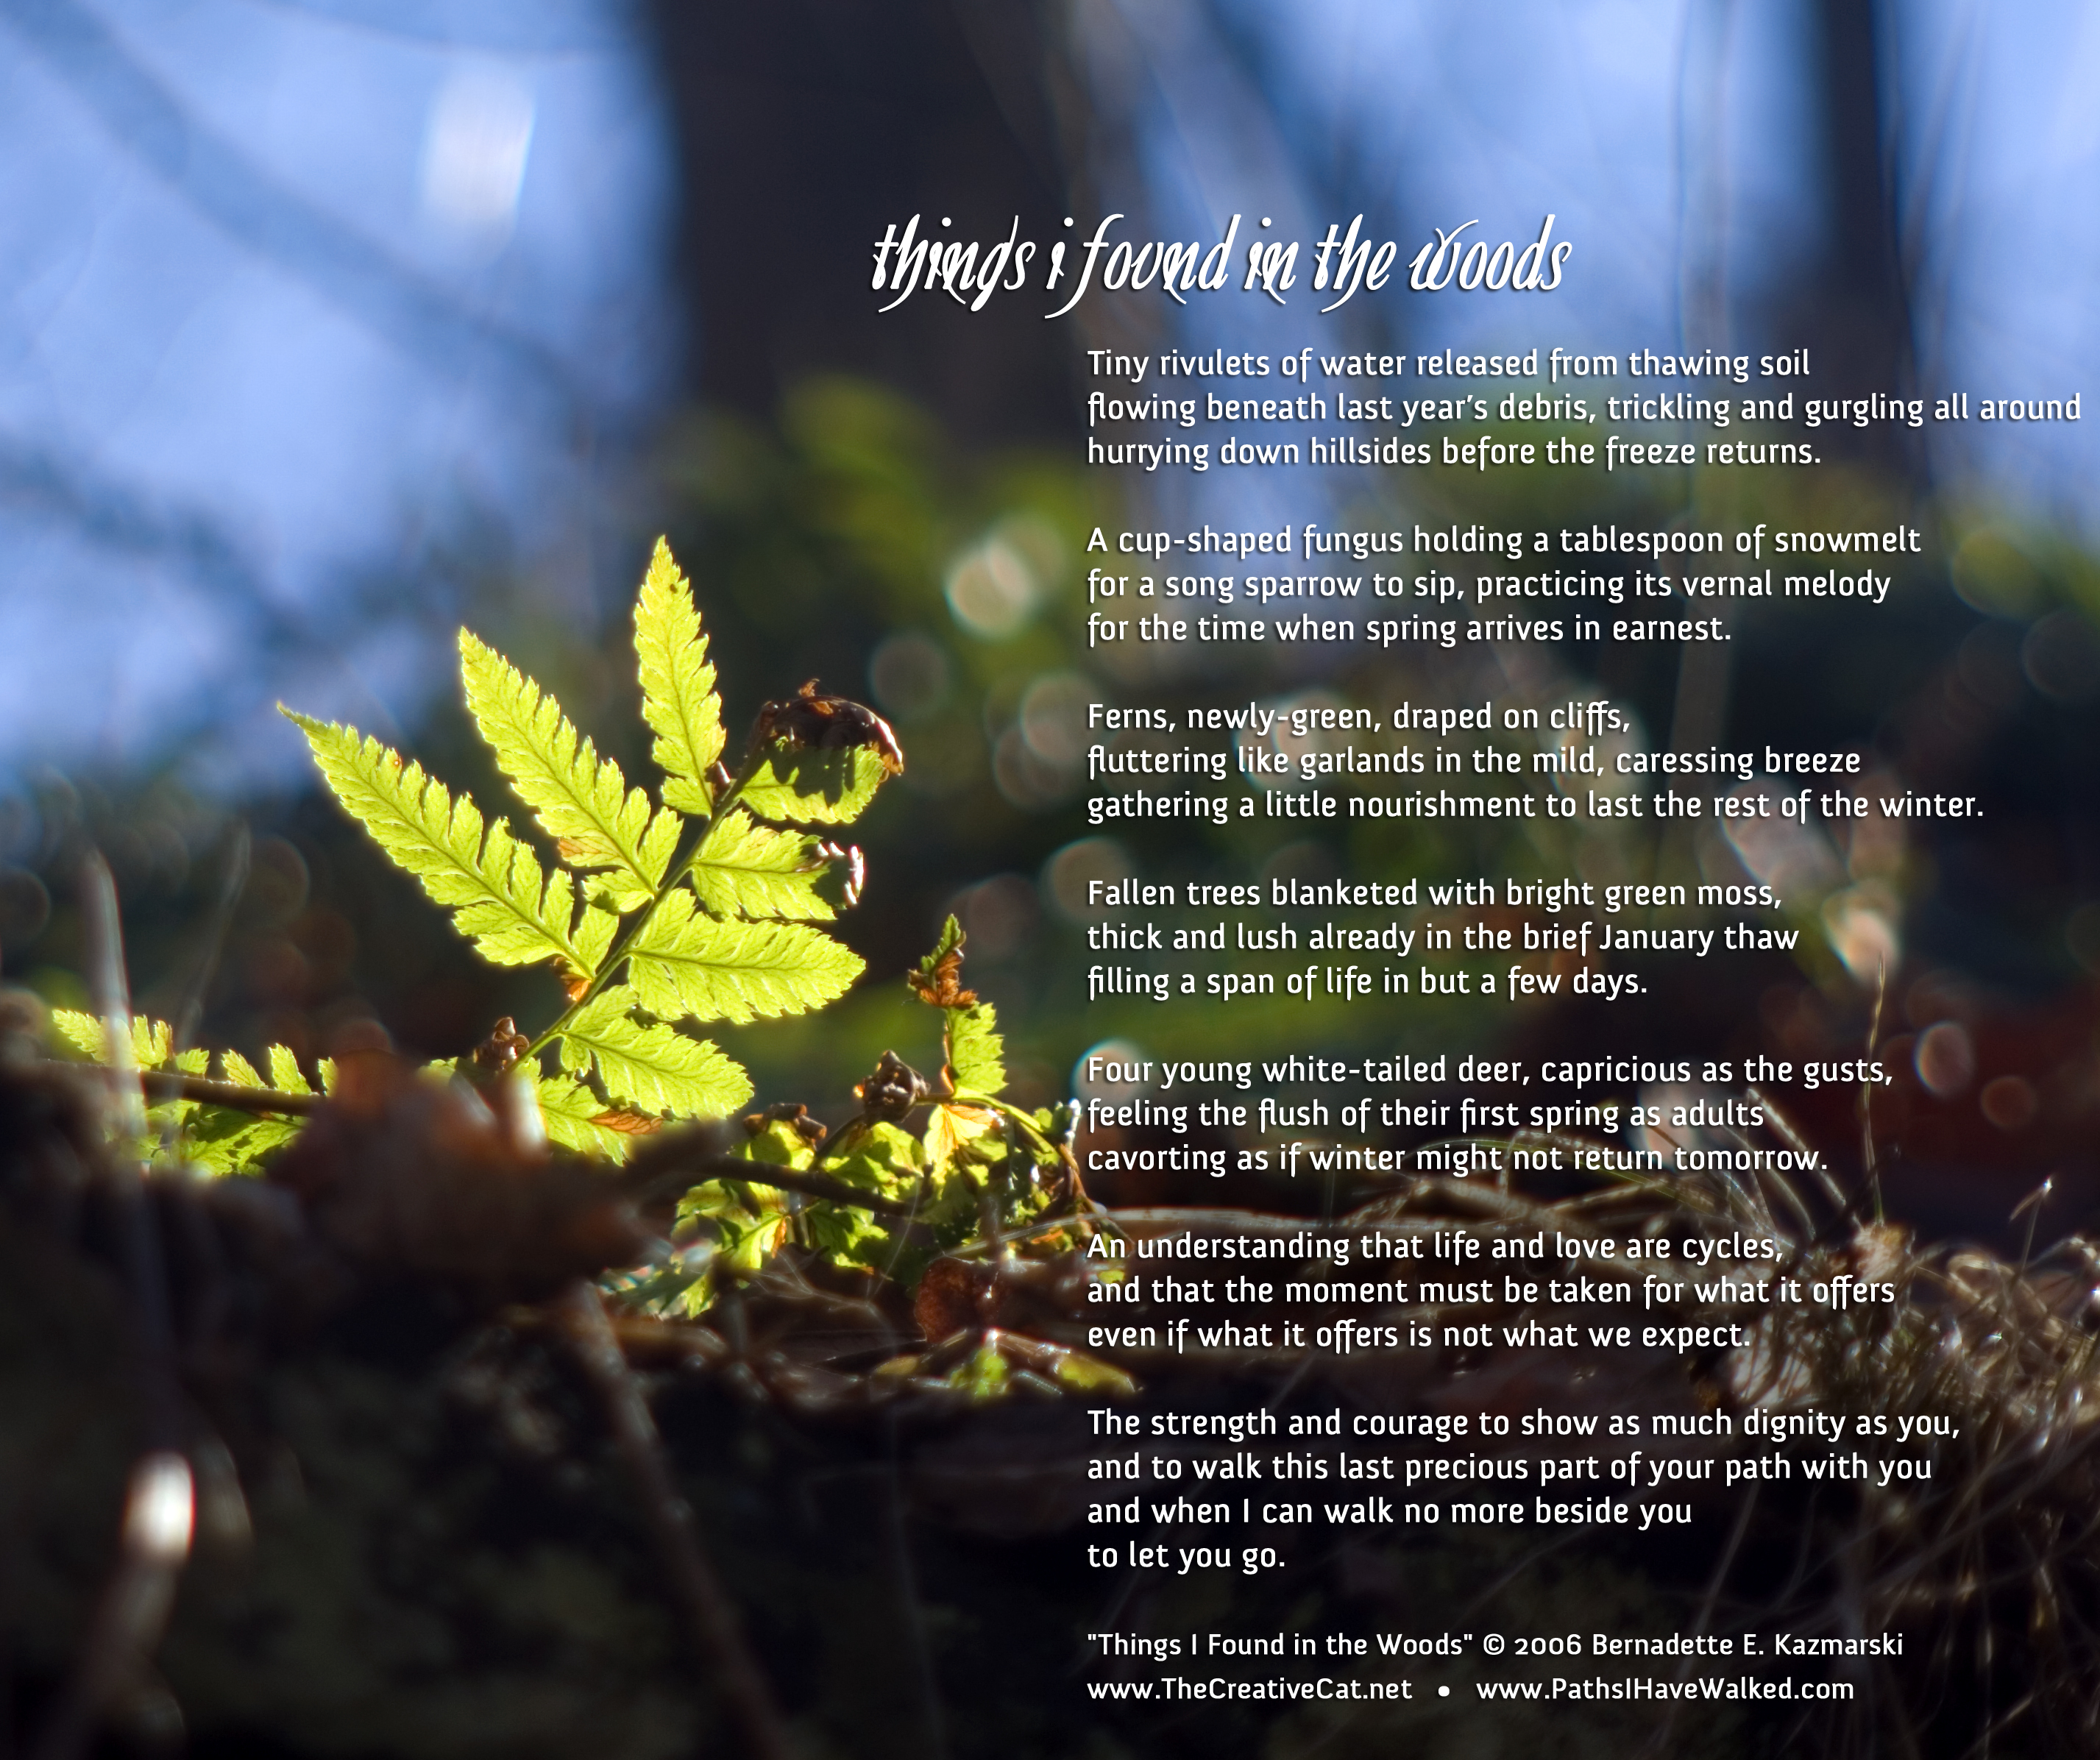 """Things I Found in the Woods"" image and poem."